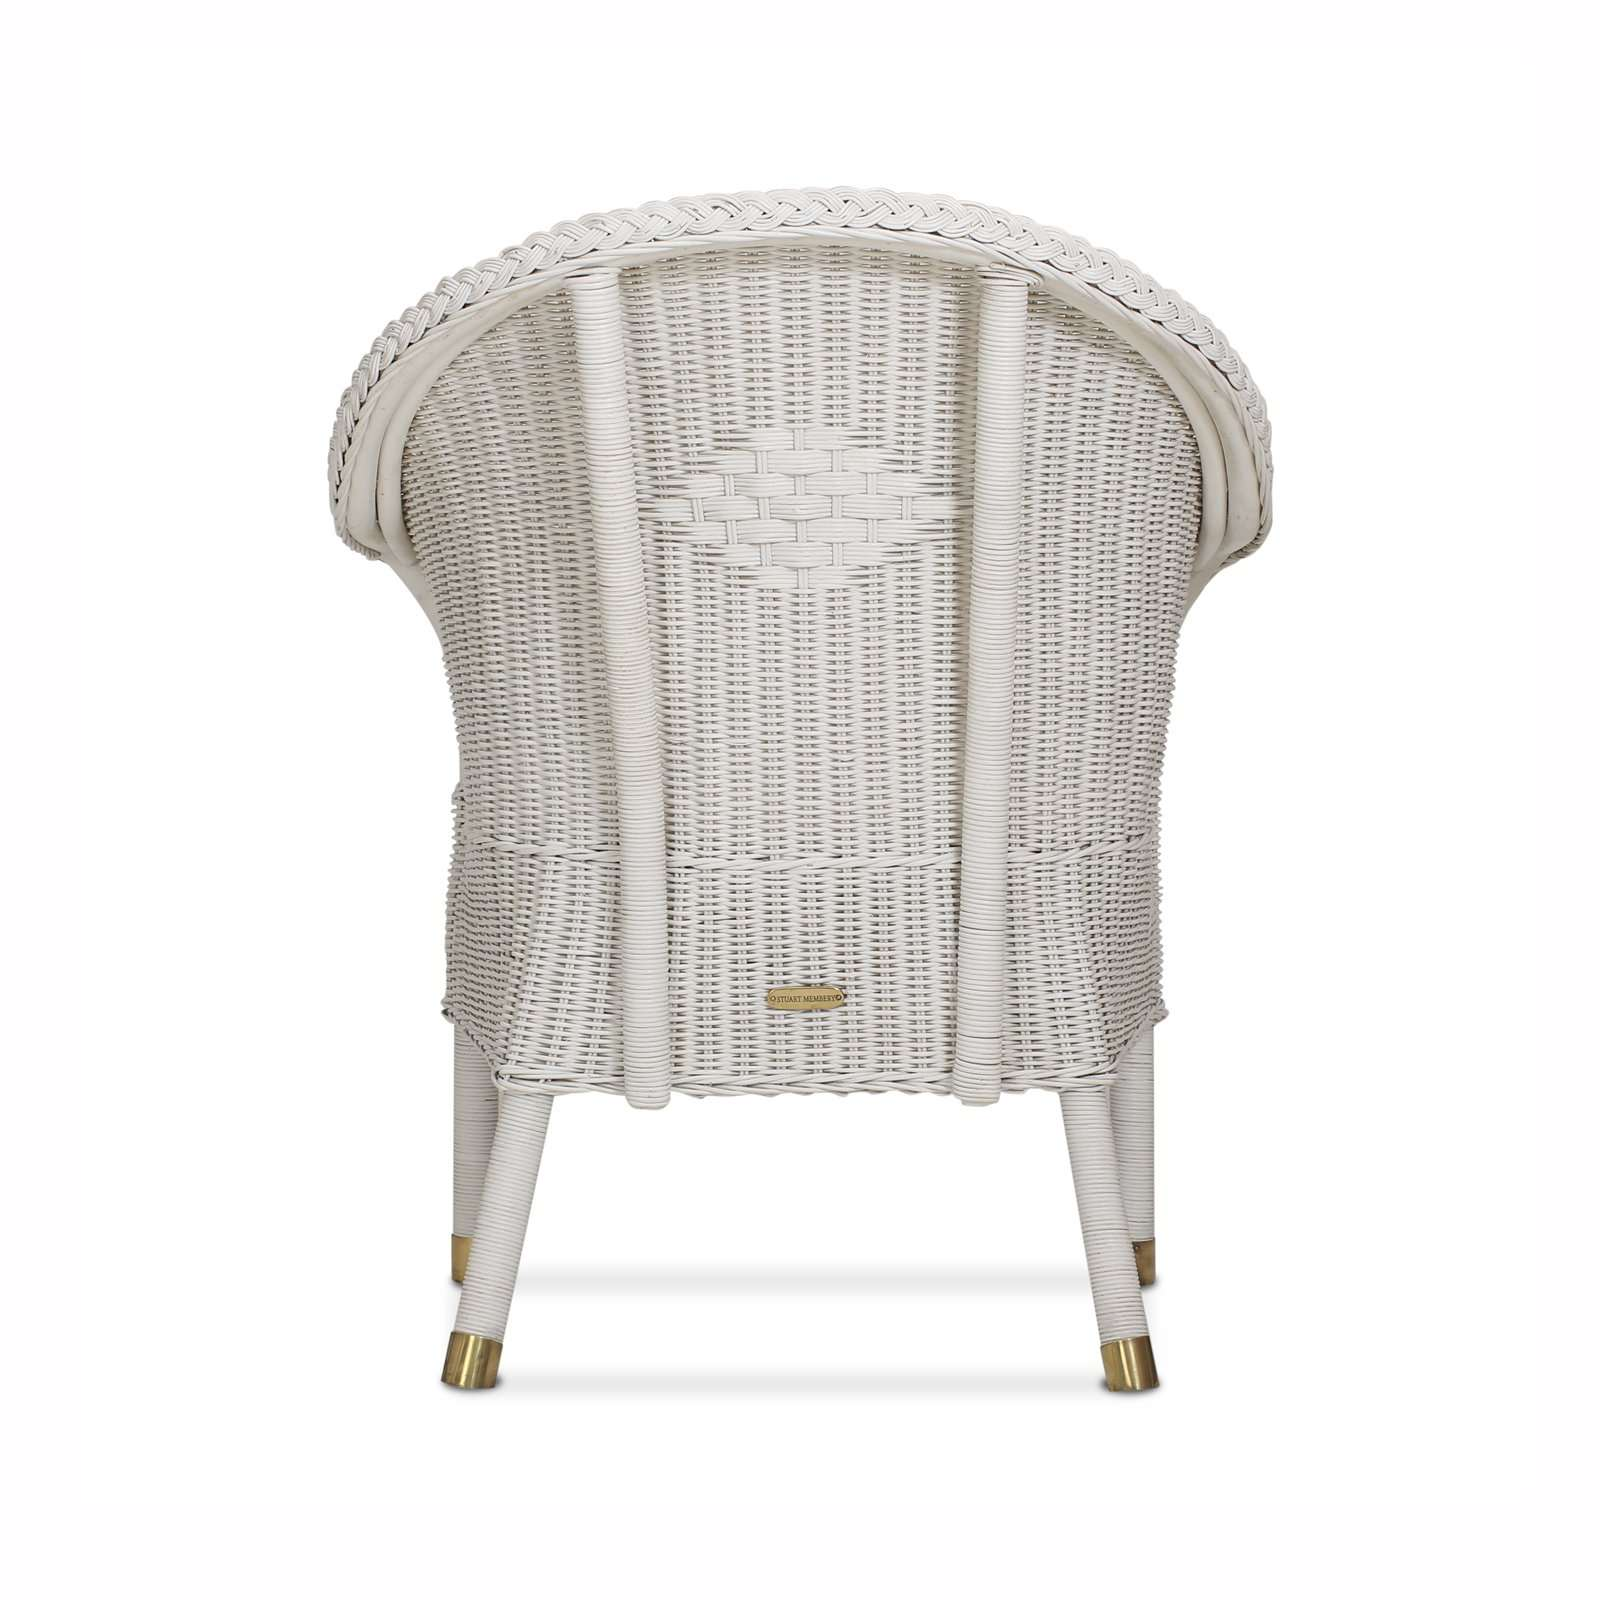 CALYPSO DINING CHAIR 3 - STUART MEMBERY HOME COLLECTION